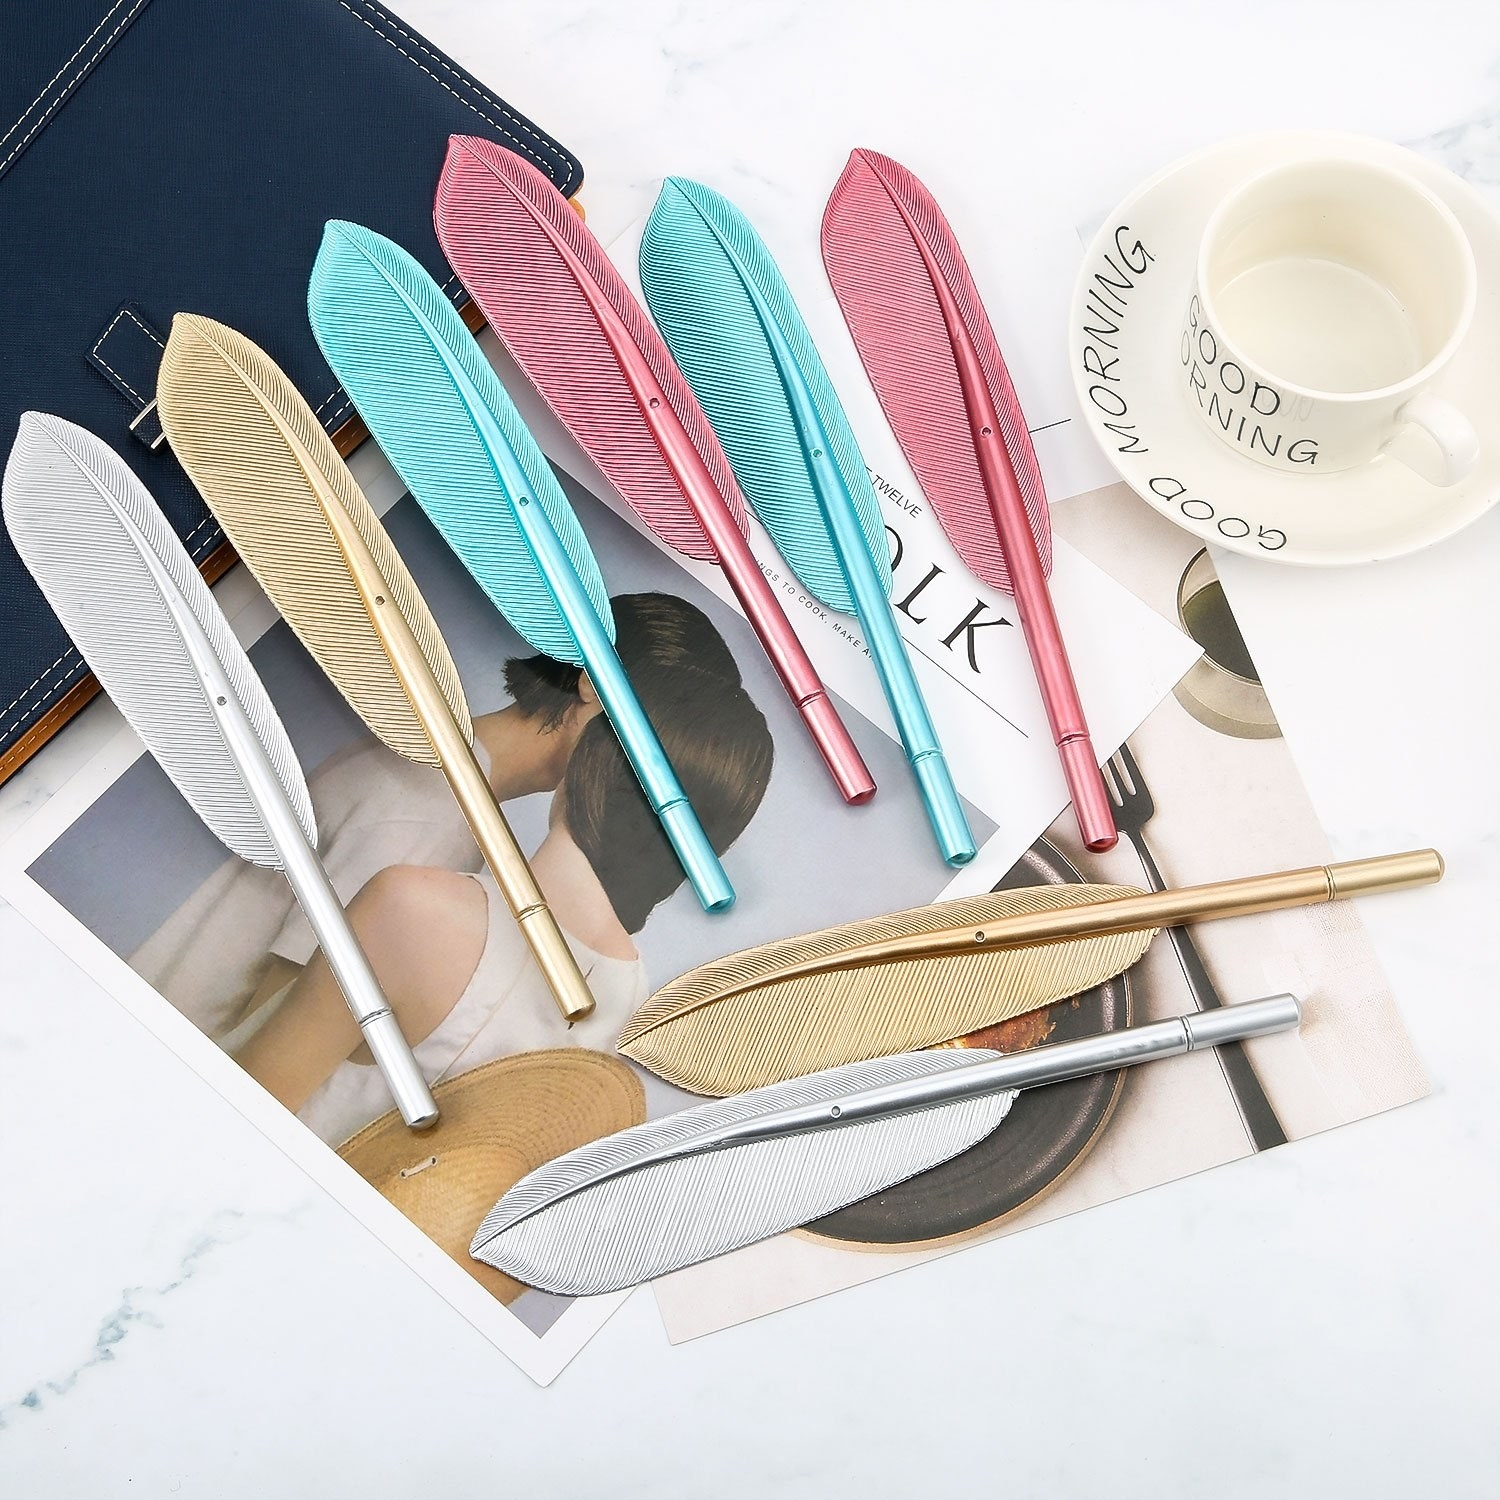 Six feather-shaped pens placed on desk